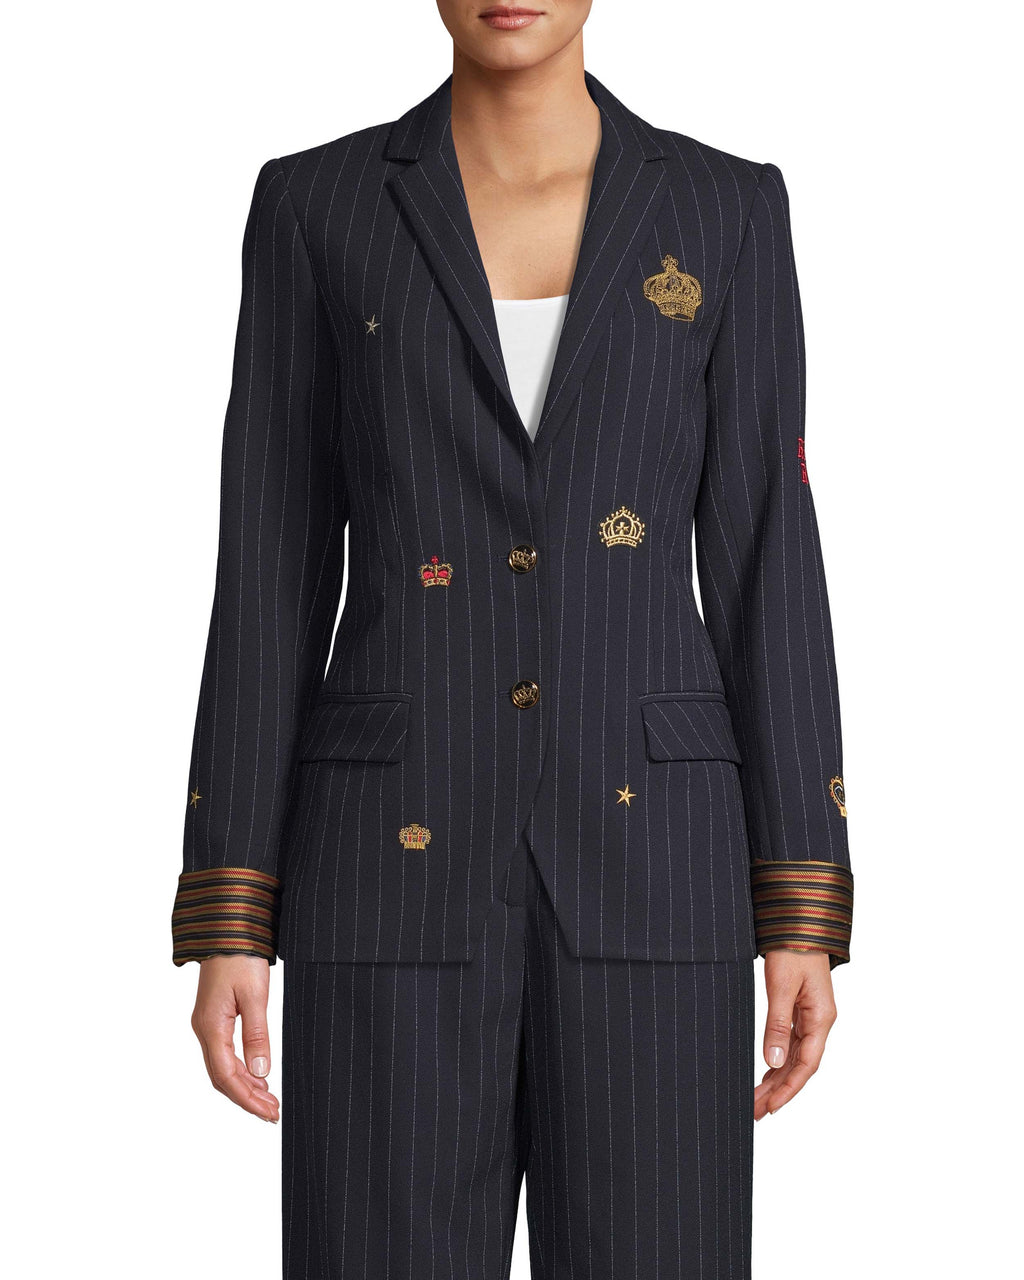 CJ18224 - EMBROIDERED PINSTRIPE BOYFRIEND BLAZER - outerwear - blazers - Everyday royalty. Our boyfriend blazer is designed in classic blue and white pinstripe, but features crown and star embroidery for extra details. Striped silk fabric lines the cuffs. Featuring front pockets and gold crown buttons. Add 1 line break Stylist tip: Pair with the matching pants for a matching set.